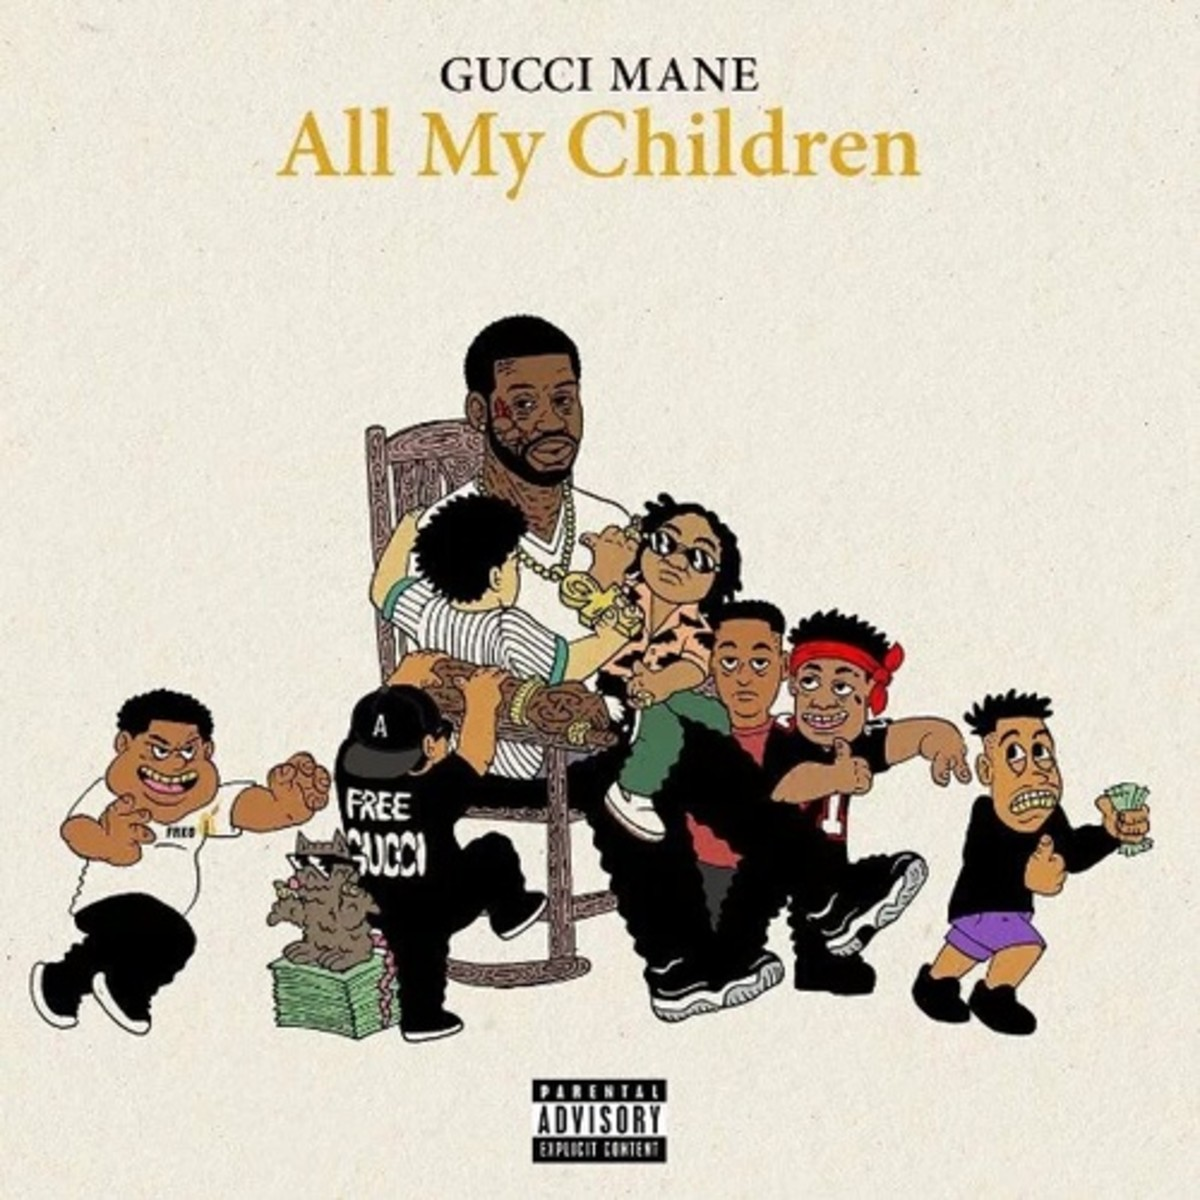 gucci-mane-all-my-children.jpg